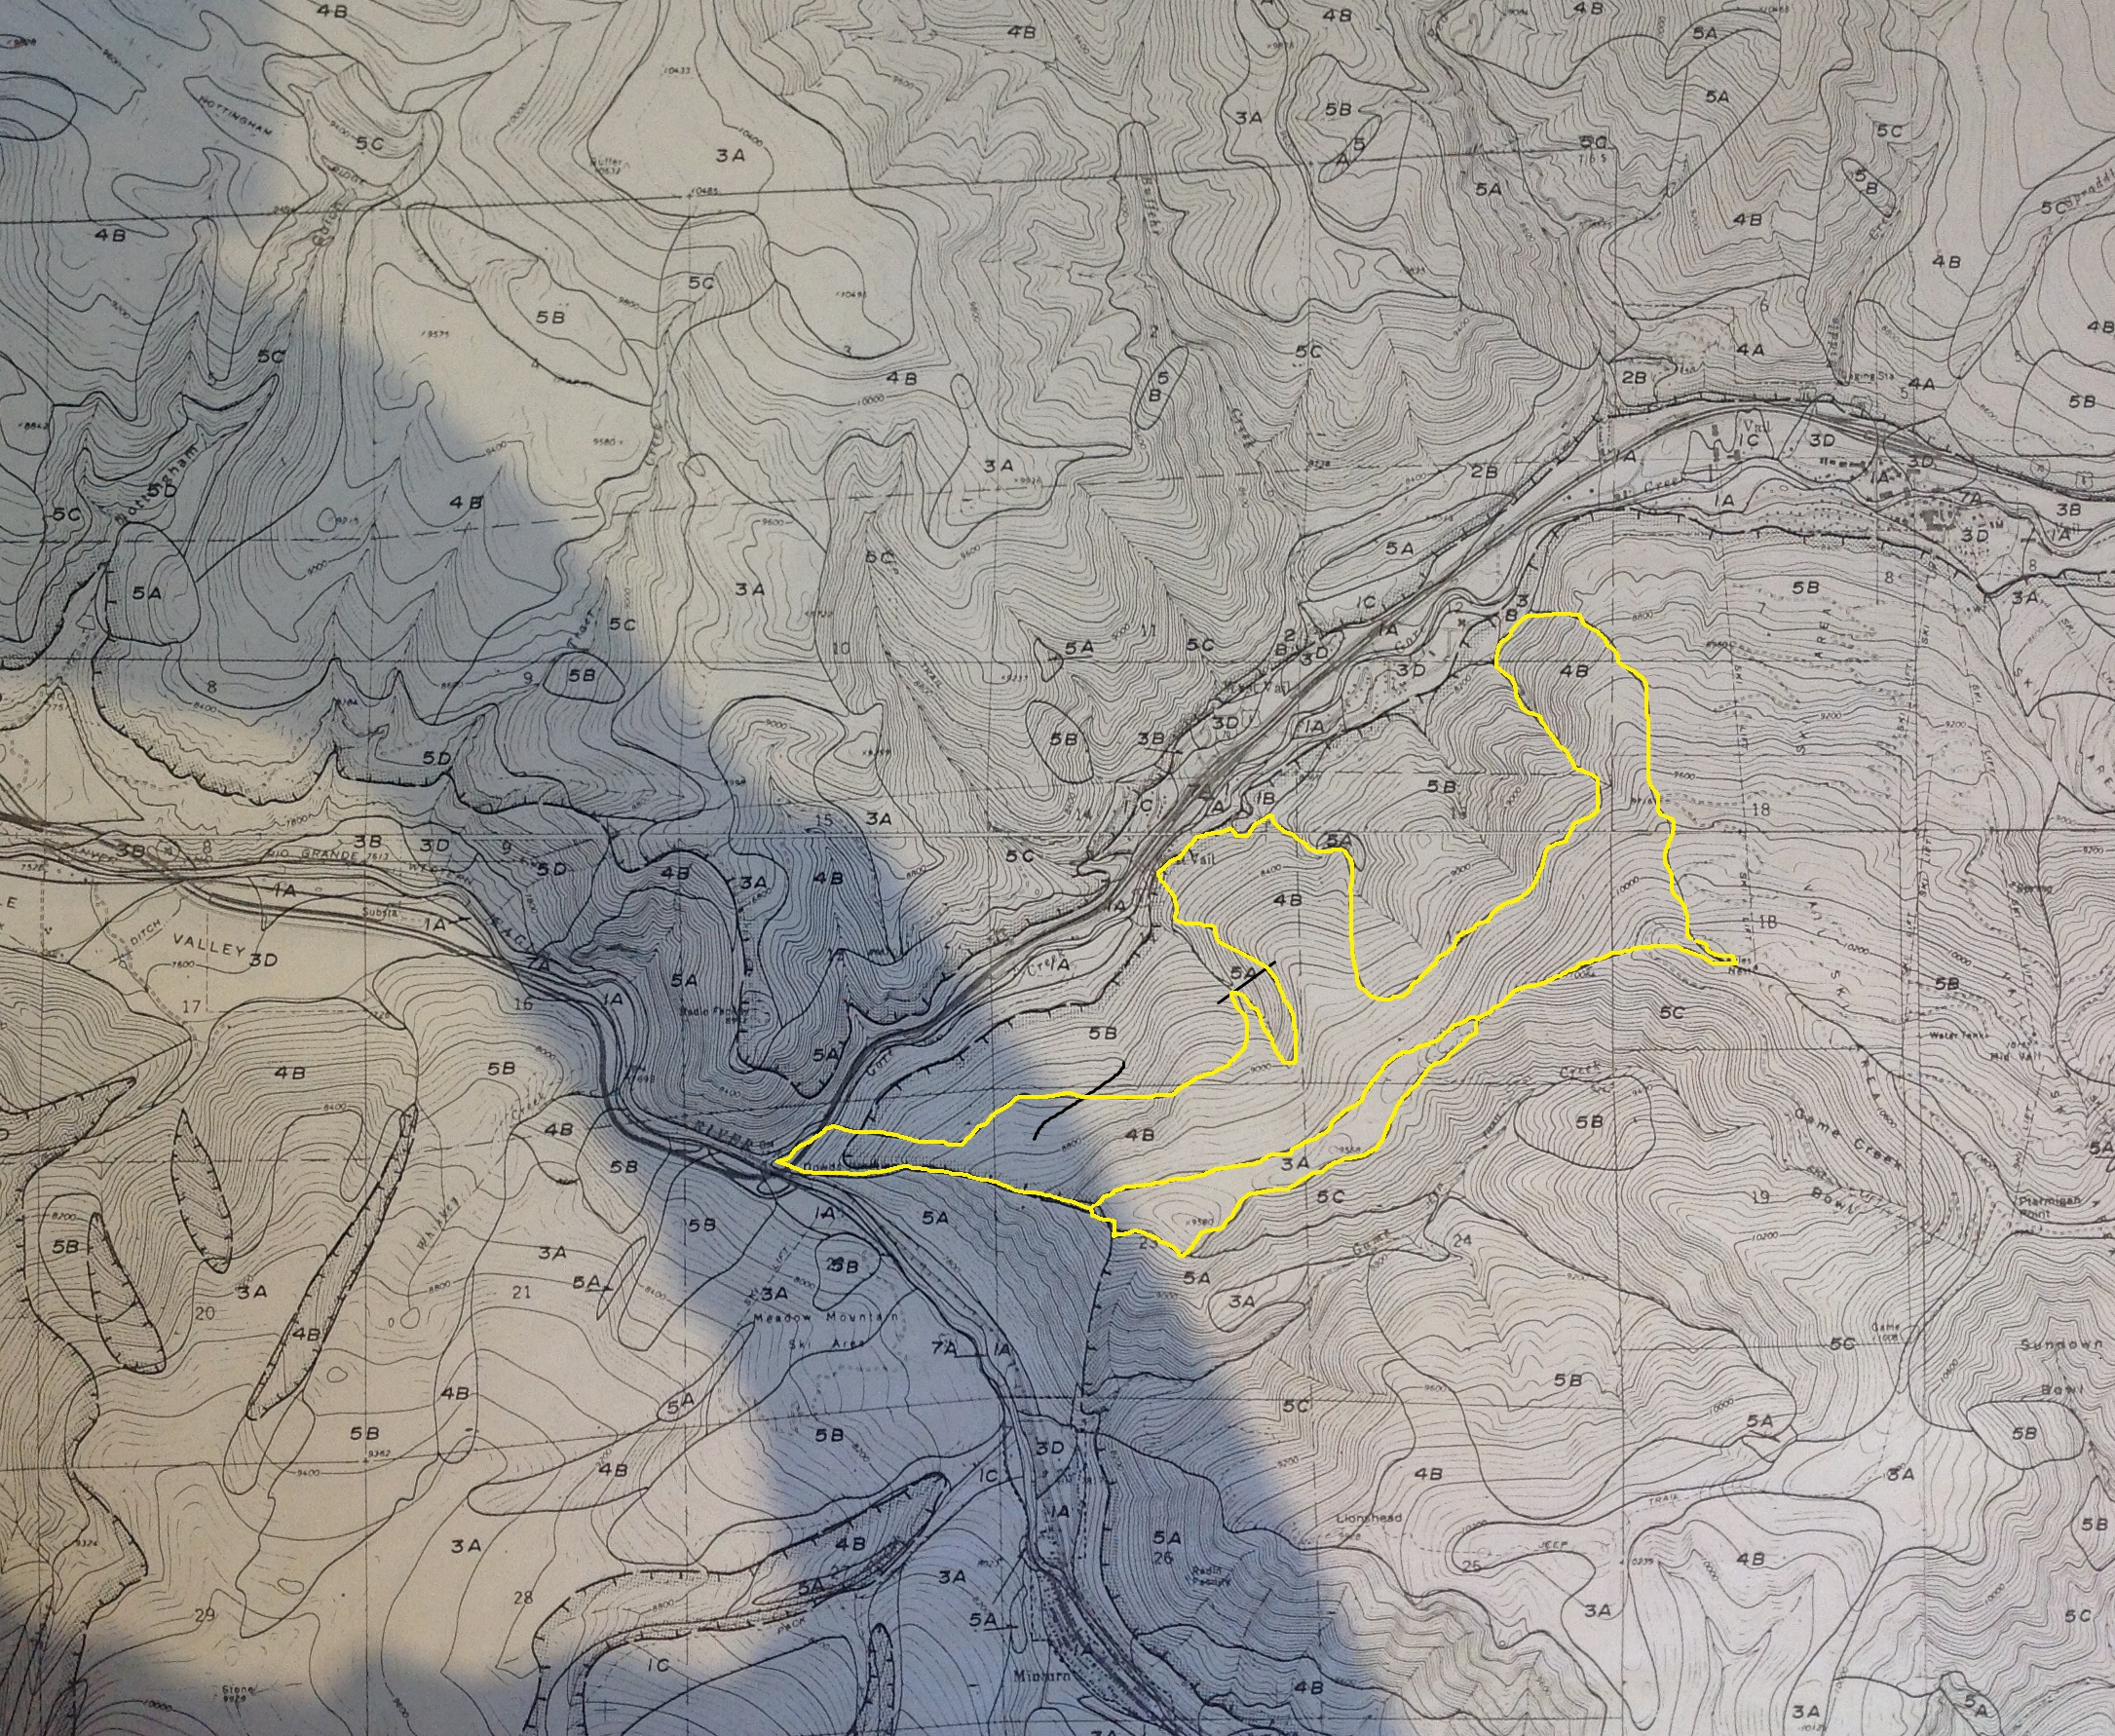 2-4-16 - West Vail Topo with Building Classification - 4A & 3A Outlined 2